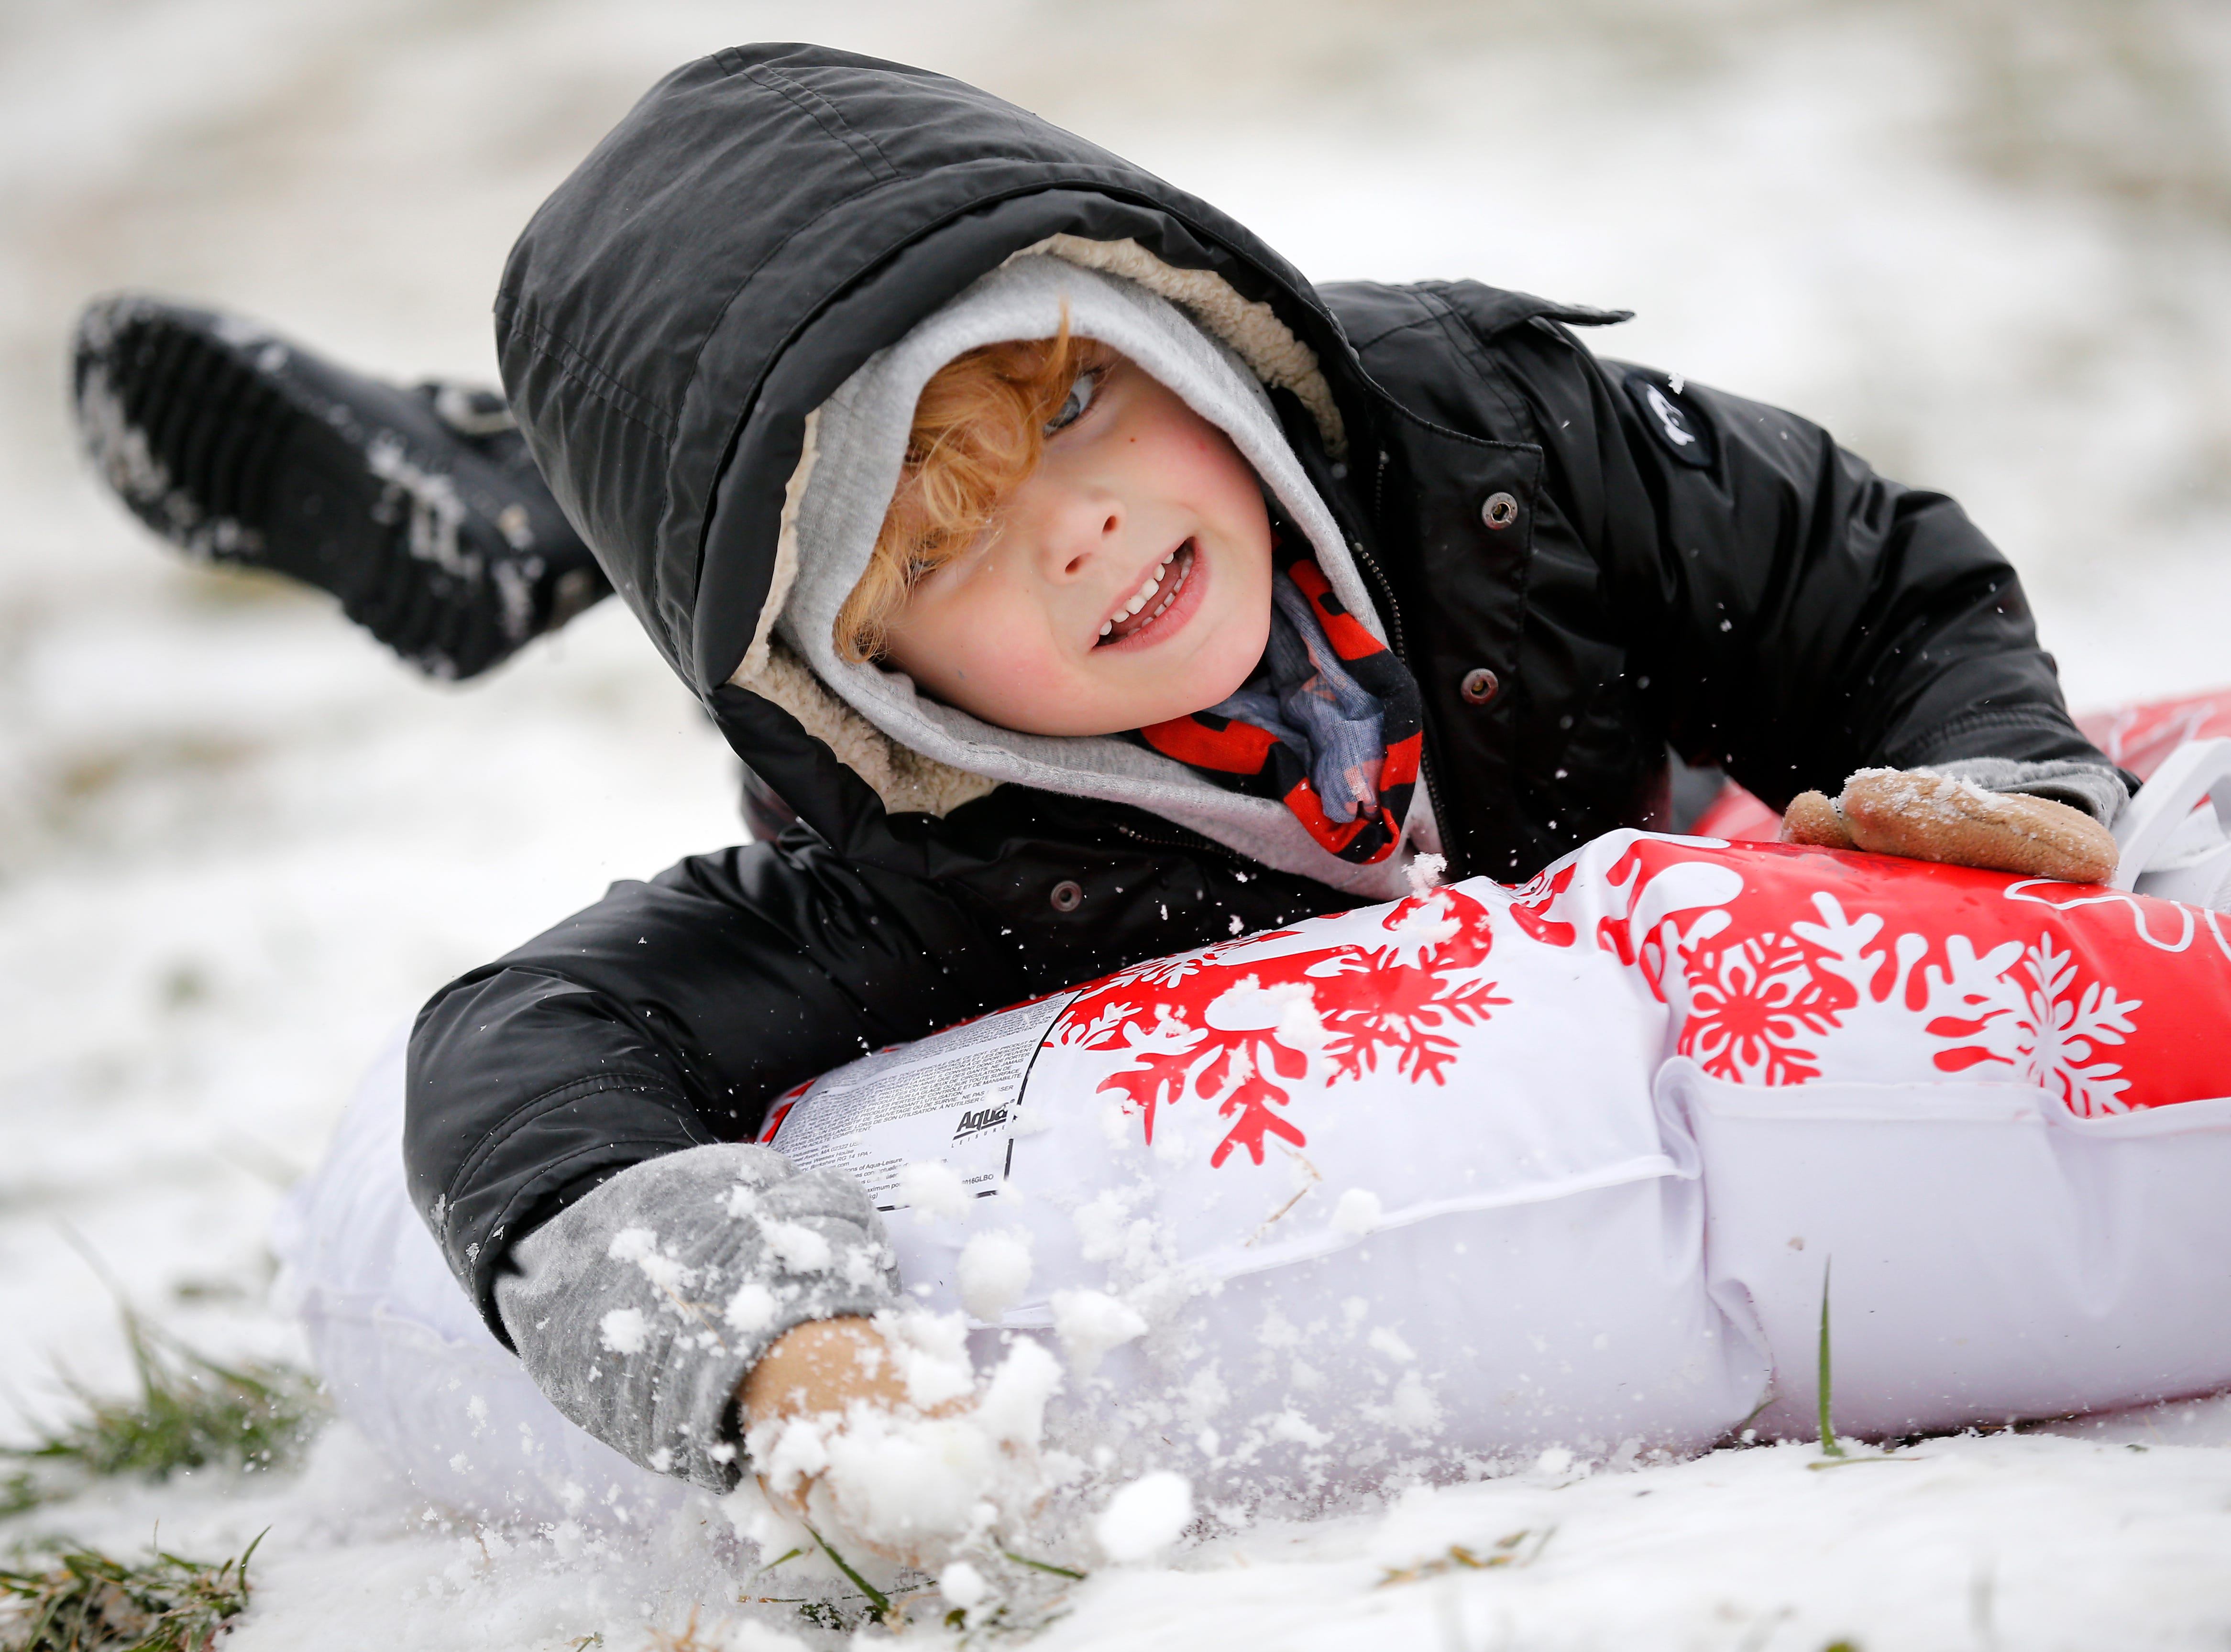 Wolfgang Steinke, 6, of Mt. Lookout smiles as he sleds downhill at Ault Park in the Hyde Park neighborhood of Cincinnati on Saturday, Jan. 12, 2019. A winter storm warning remained in effect until 7 a.m. Sunday after the region experienced the first snowfall of 2019.